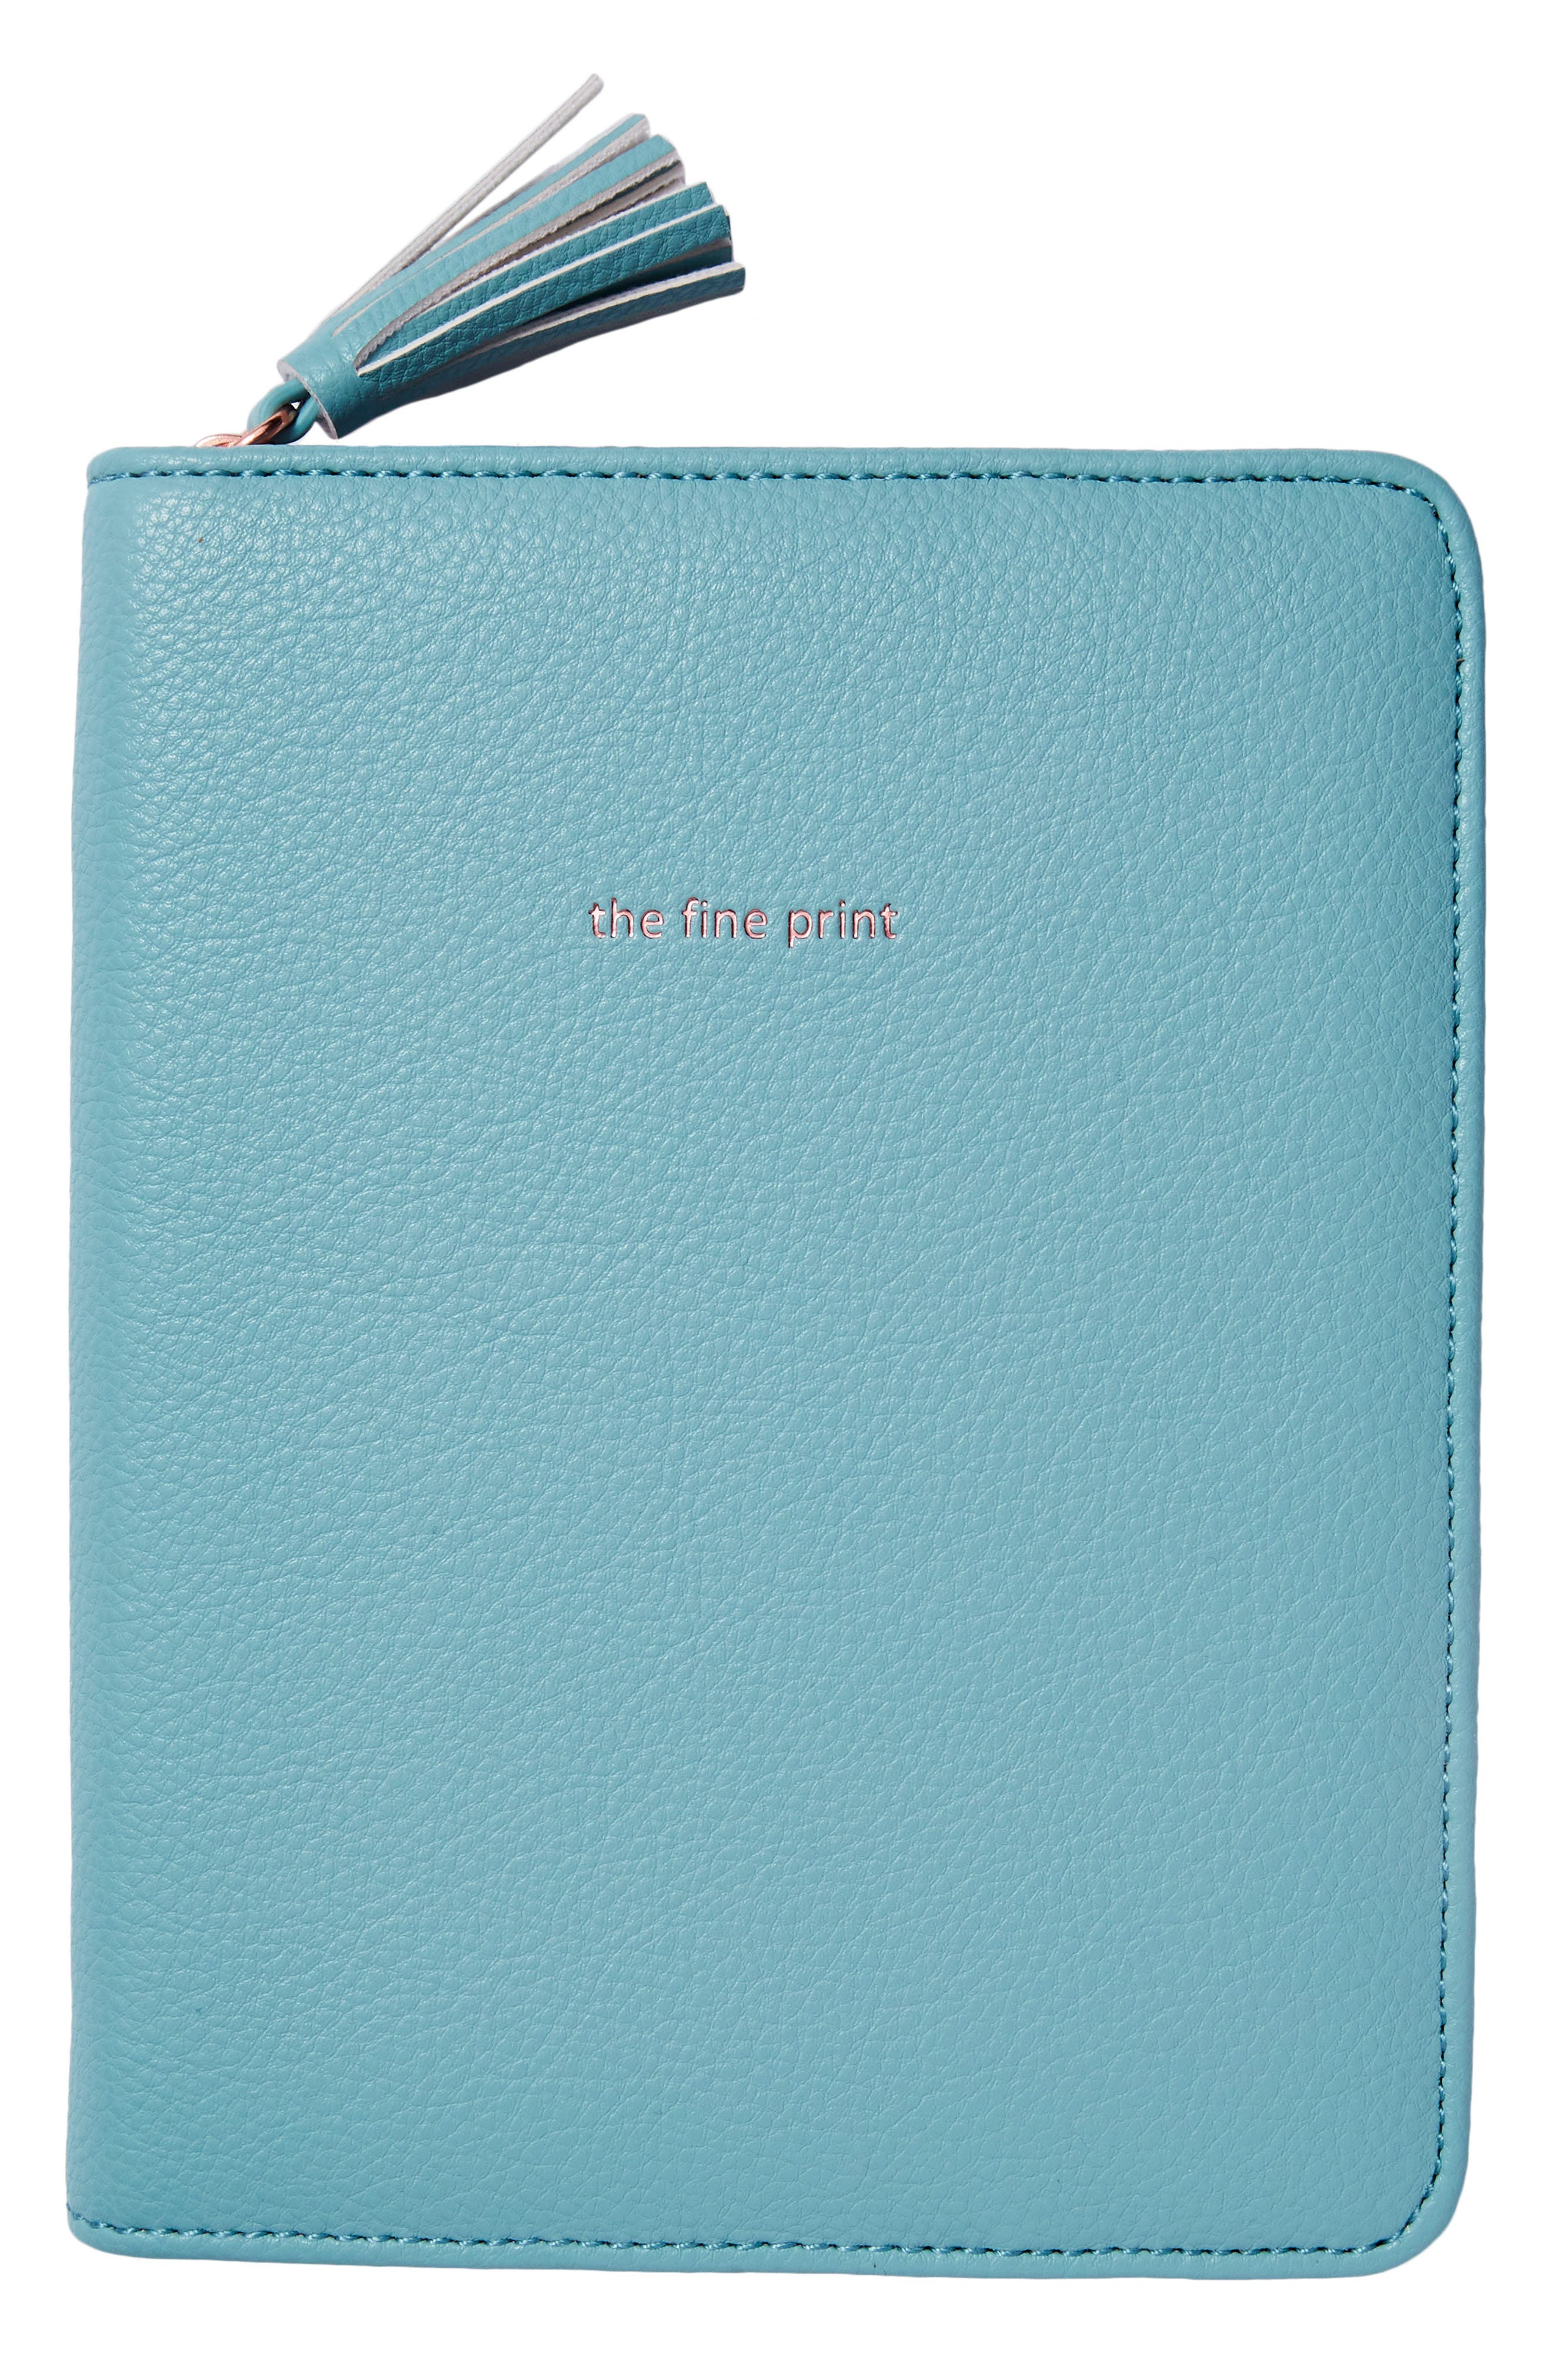 Idiom Leather Journal,                             Alternate thumbnail 6, color,                             Mint